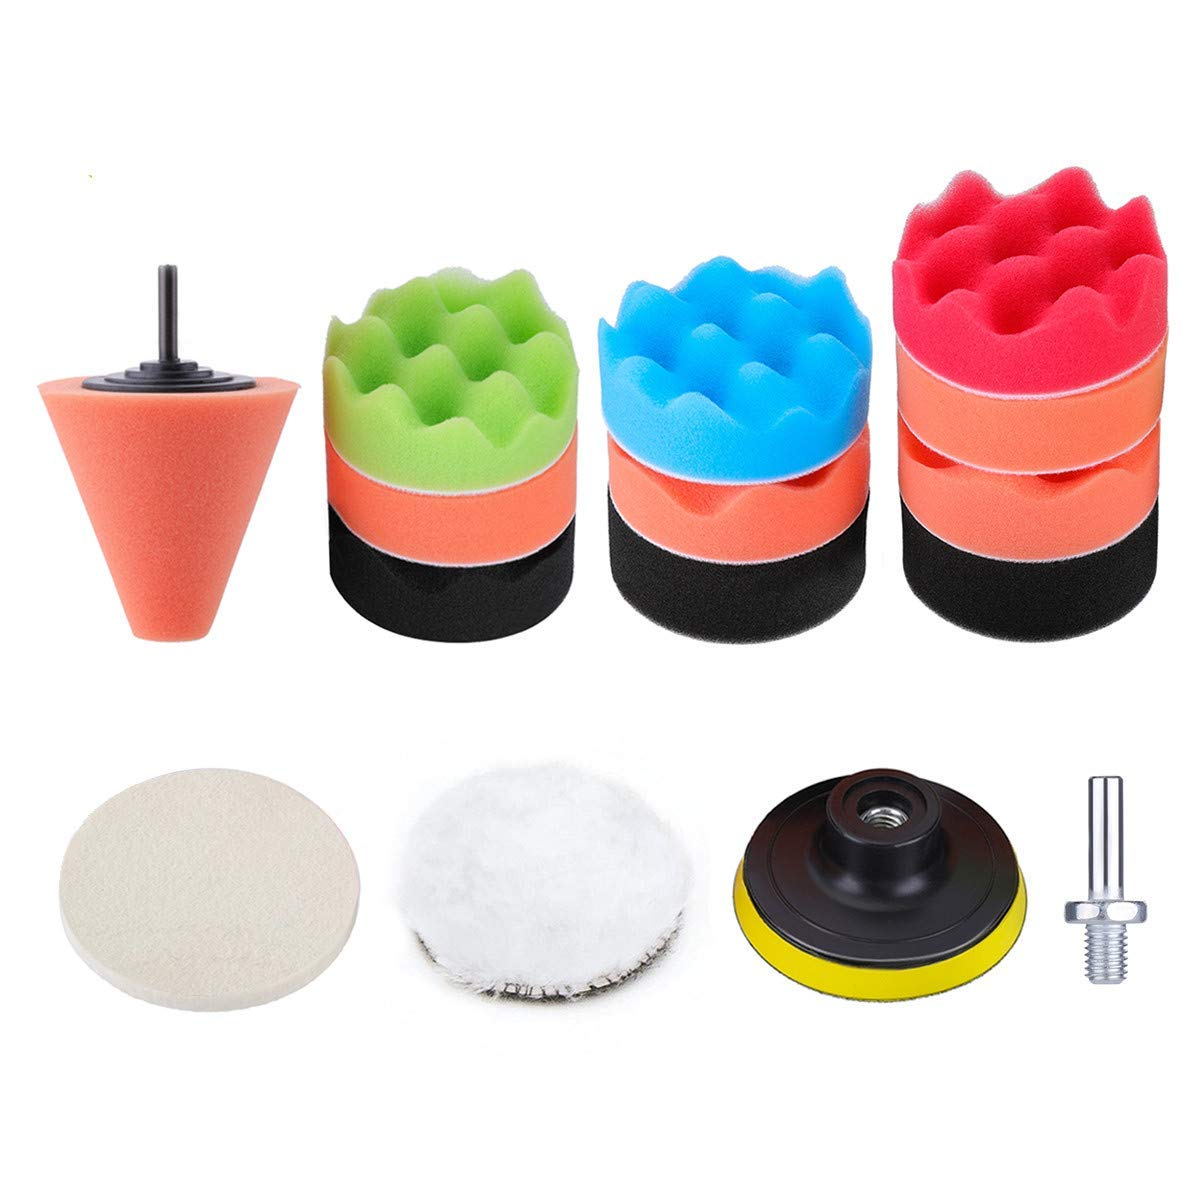 3 Inch Buffing Sponge Pads DRILLPRO 15 PCS Car Foam Polishing Pad Kit Compound Drill Buffing Sponge Pads Kit for Car Sanding, Polishing, Waxing, Sealing Glaze